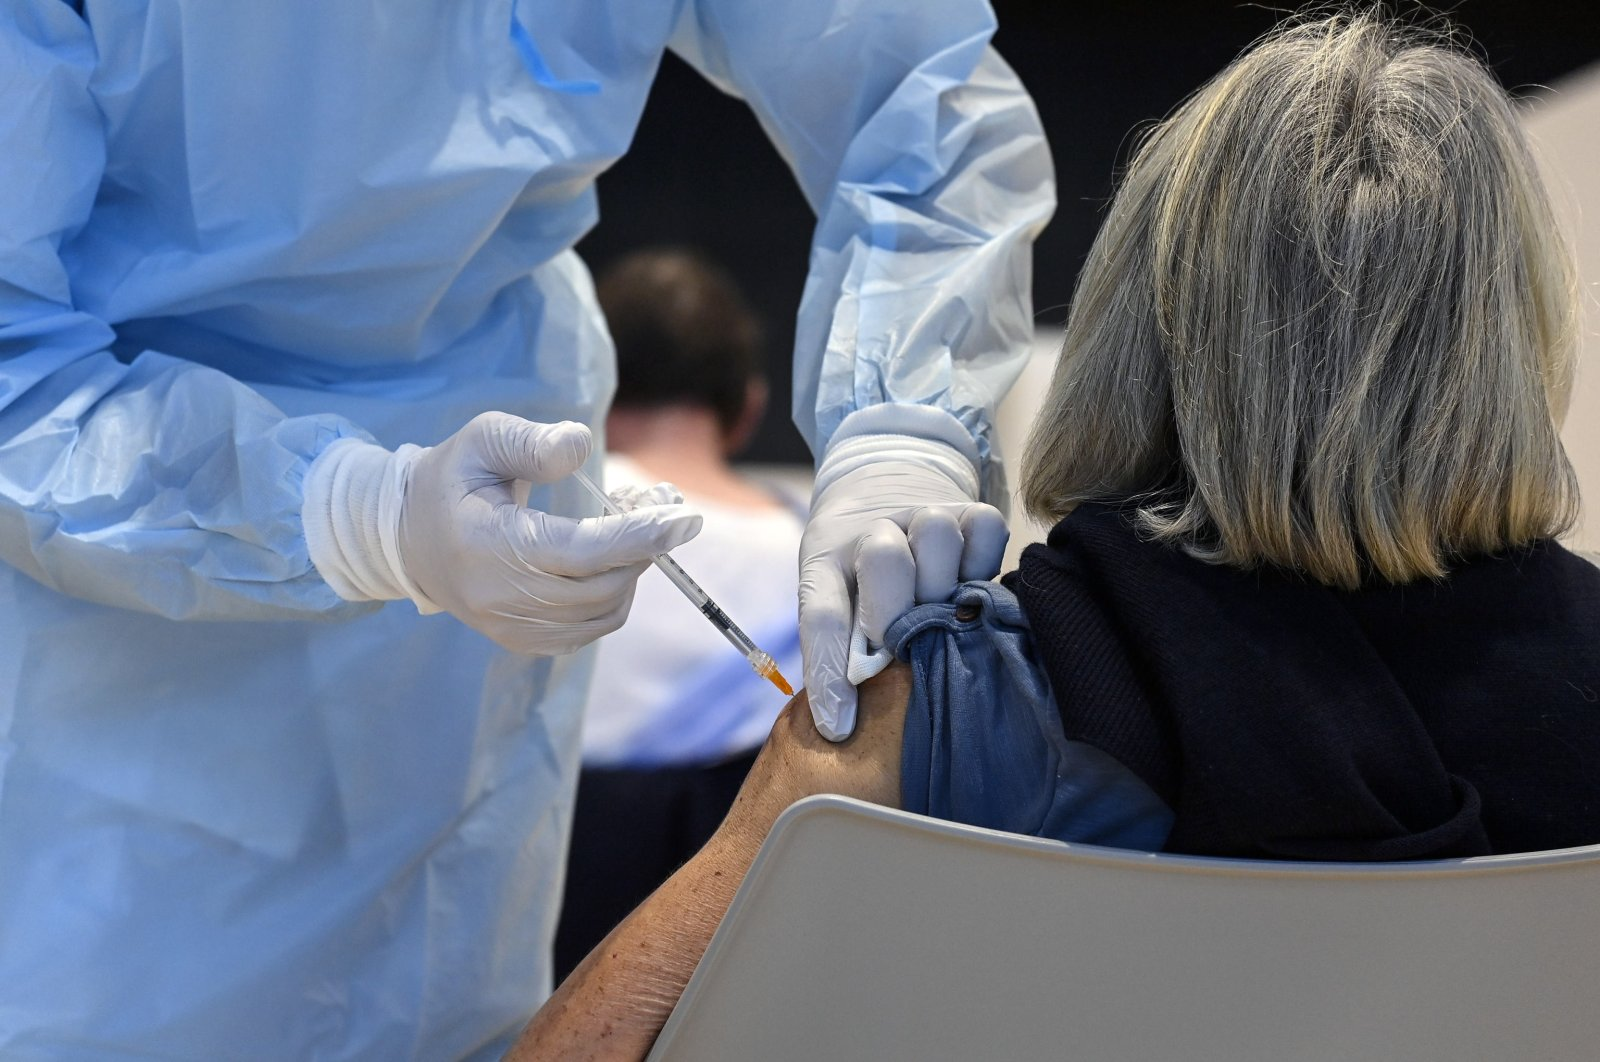 A woman receives a COVID-19 vaccine at the vaccination center set up at the La Nuvola congress center in Rome, Italy, April 4, 2021. (EPA Photo)